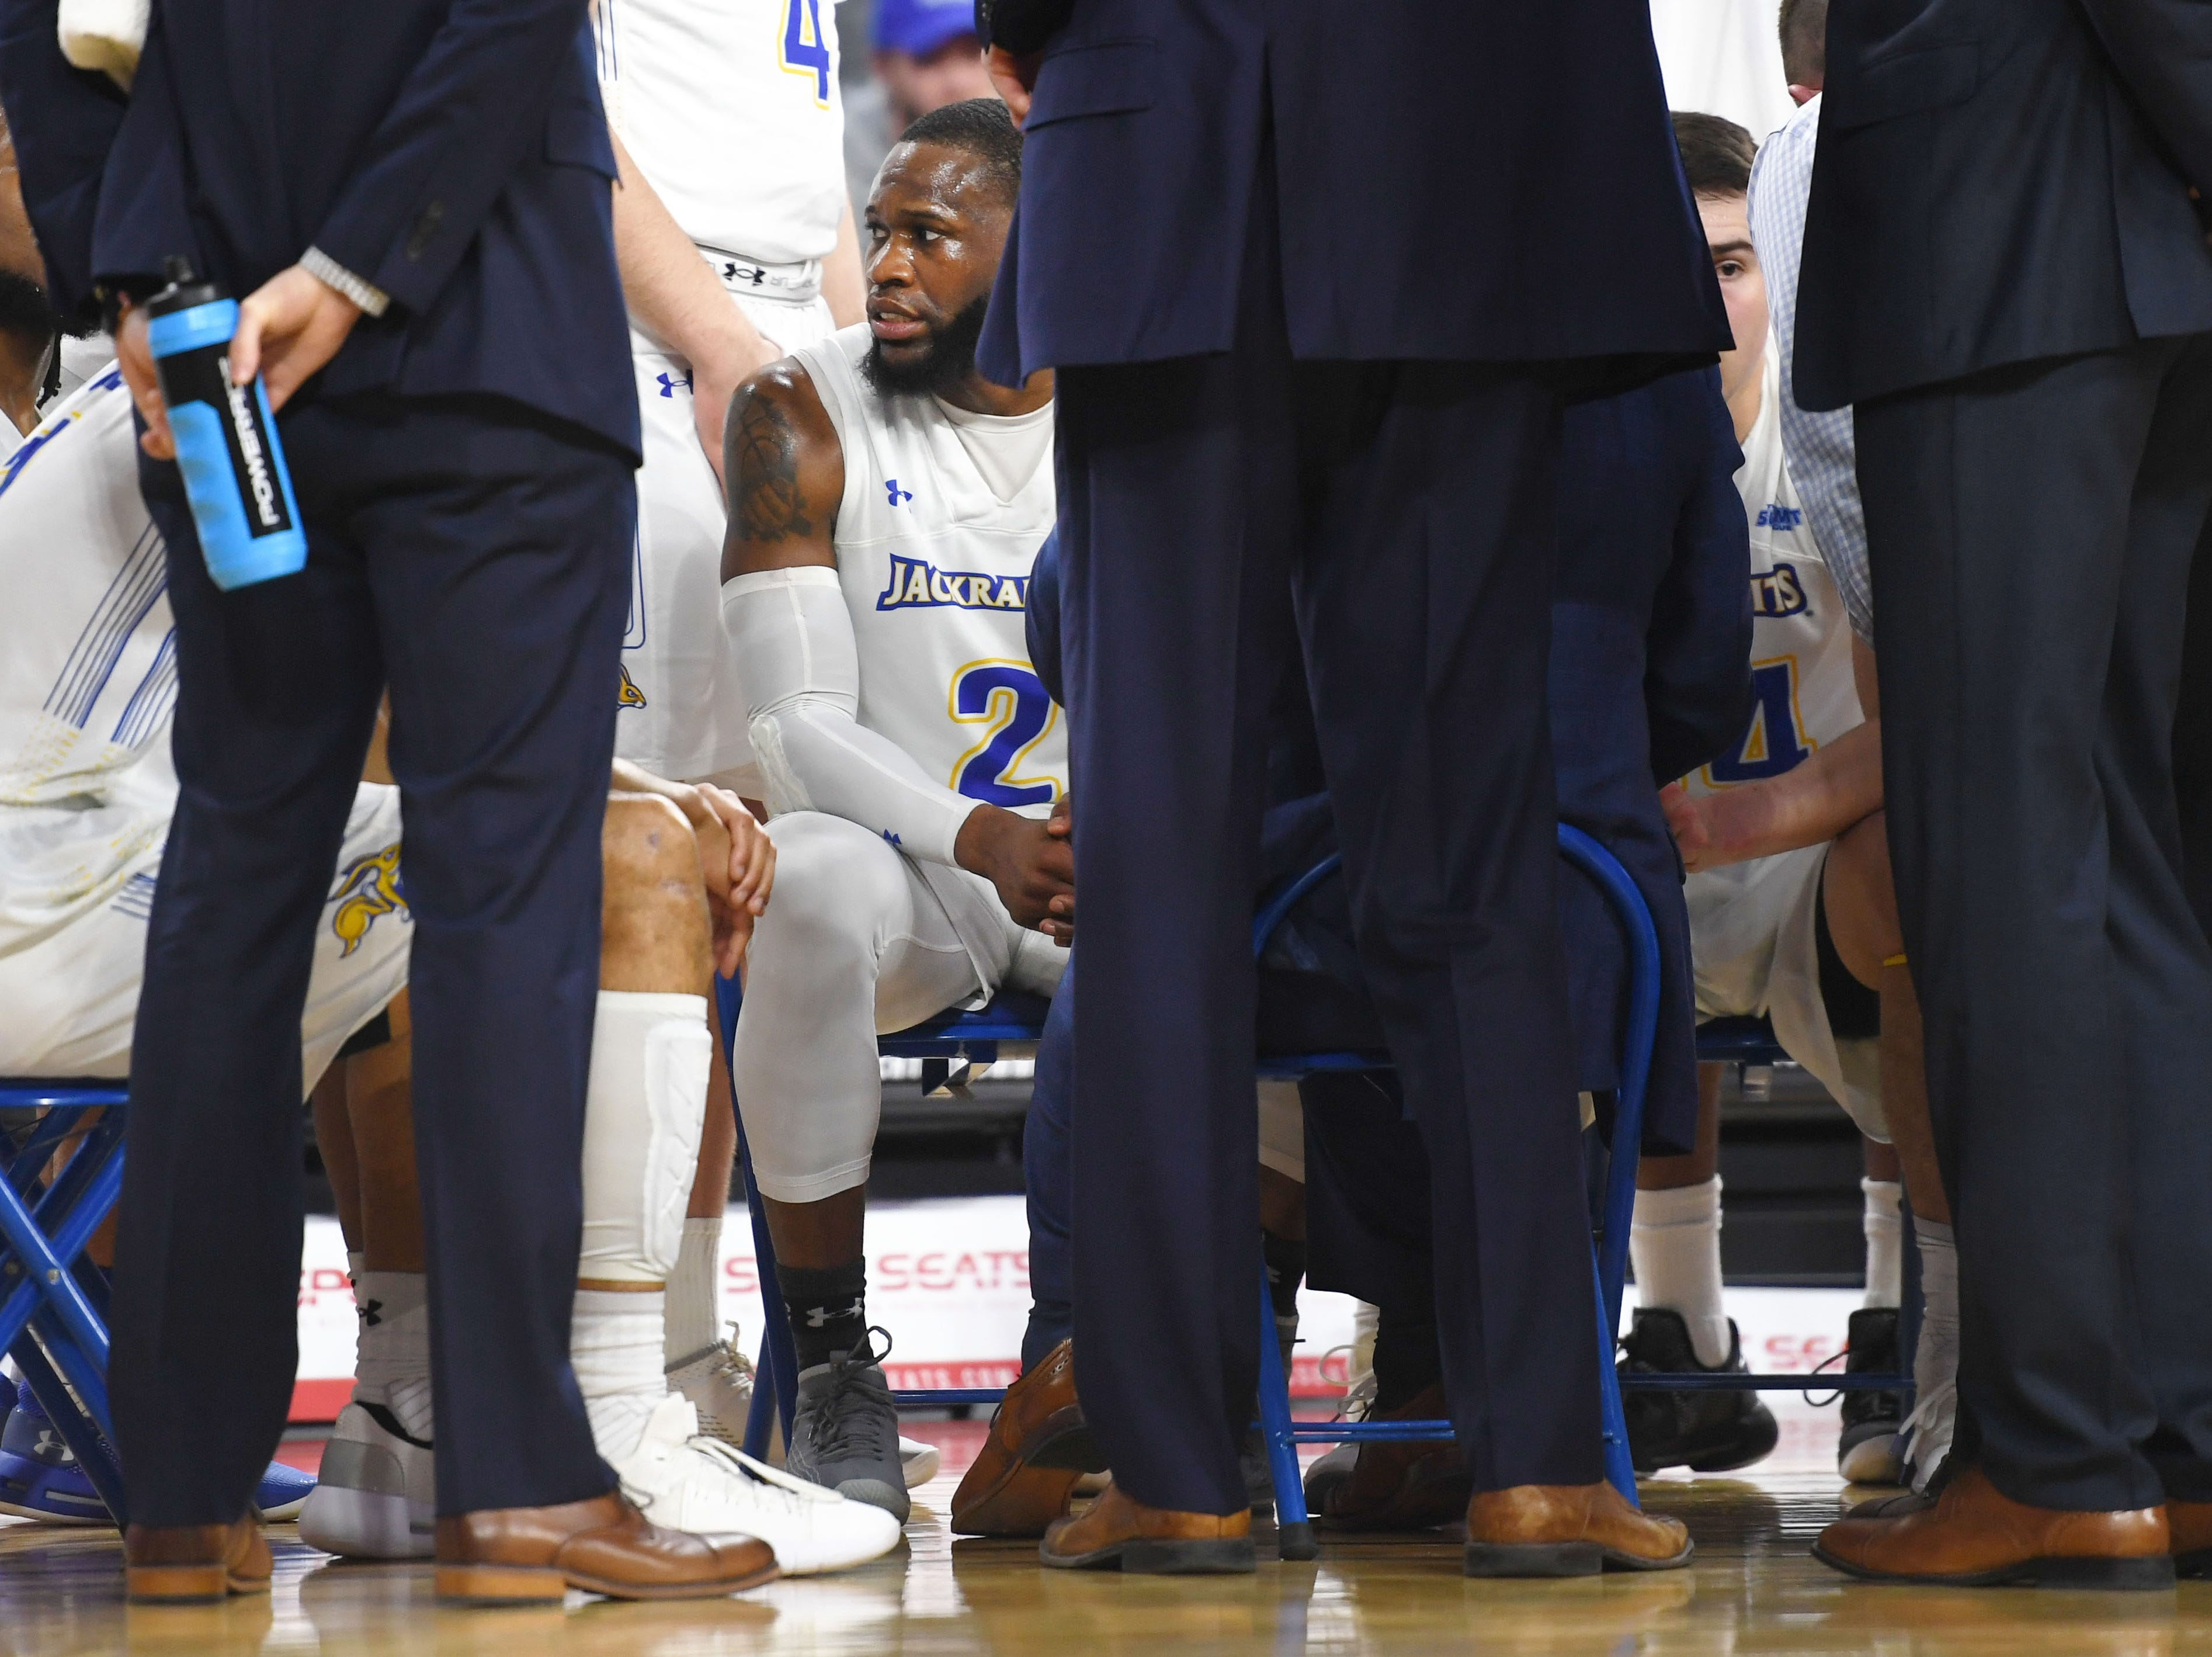 SDSU's Tevin King in a huddle during the game against Western Illinois Saturday, March 9, in the Summit League tournament at the Denny Sanford Premier Center in Sioux Falls.